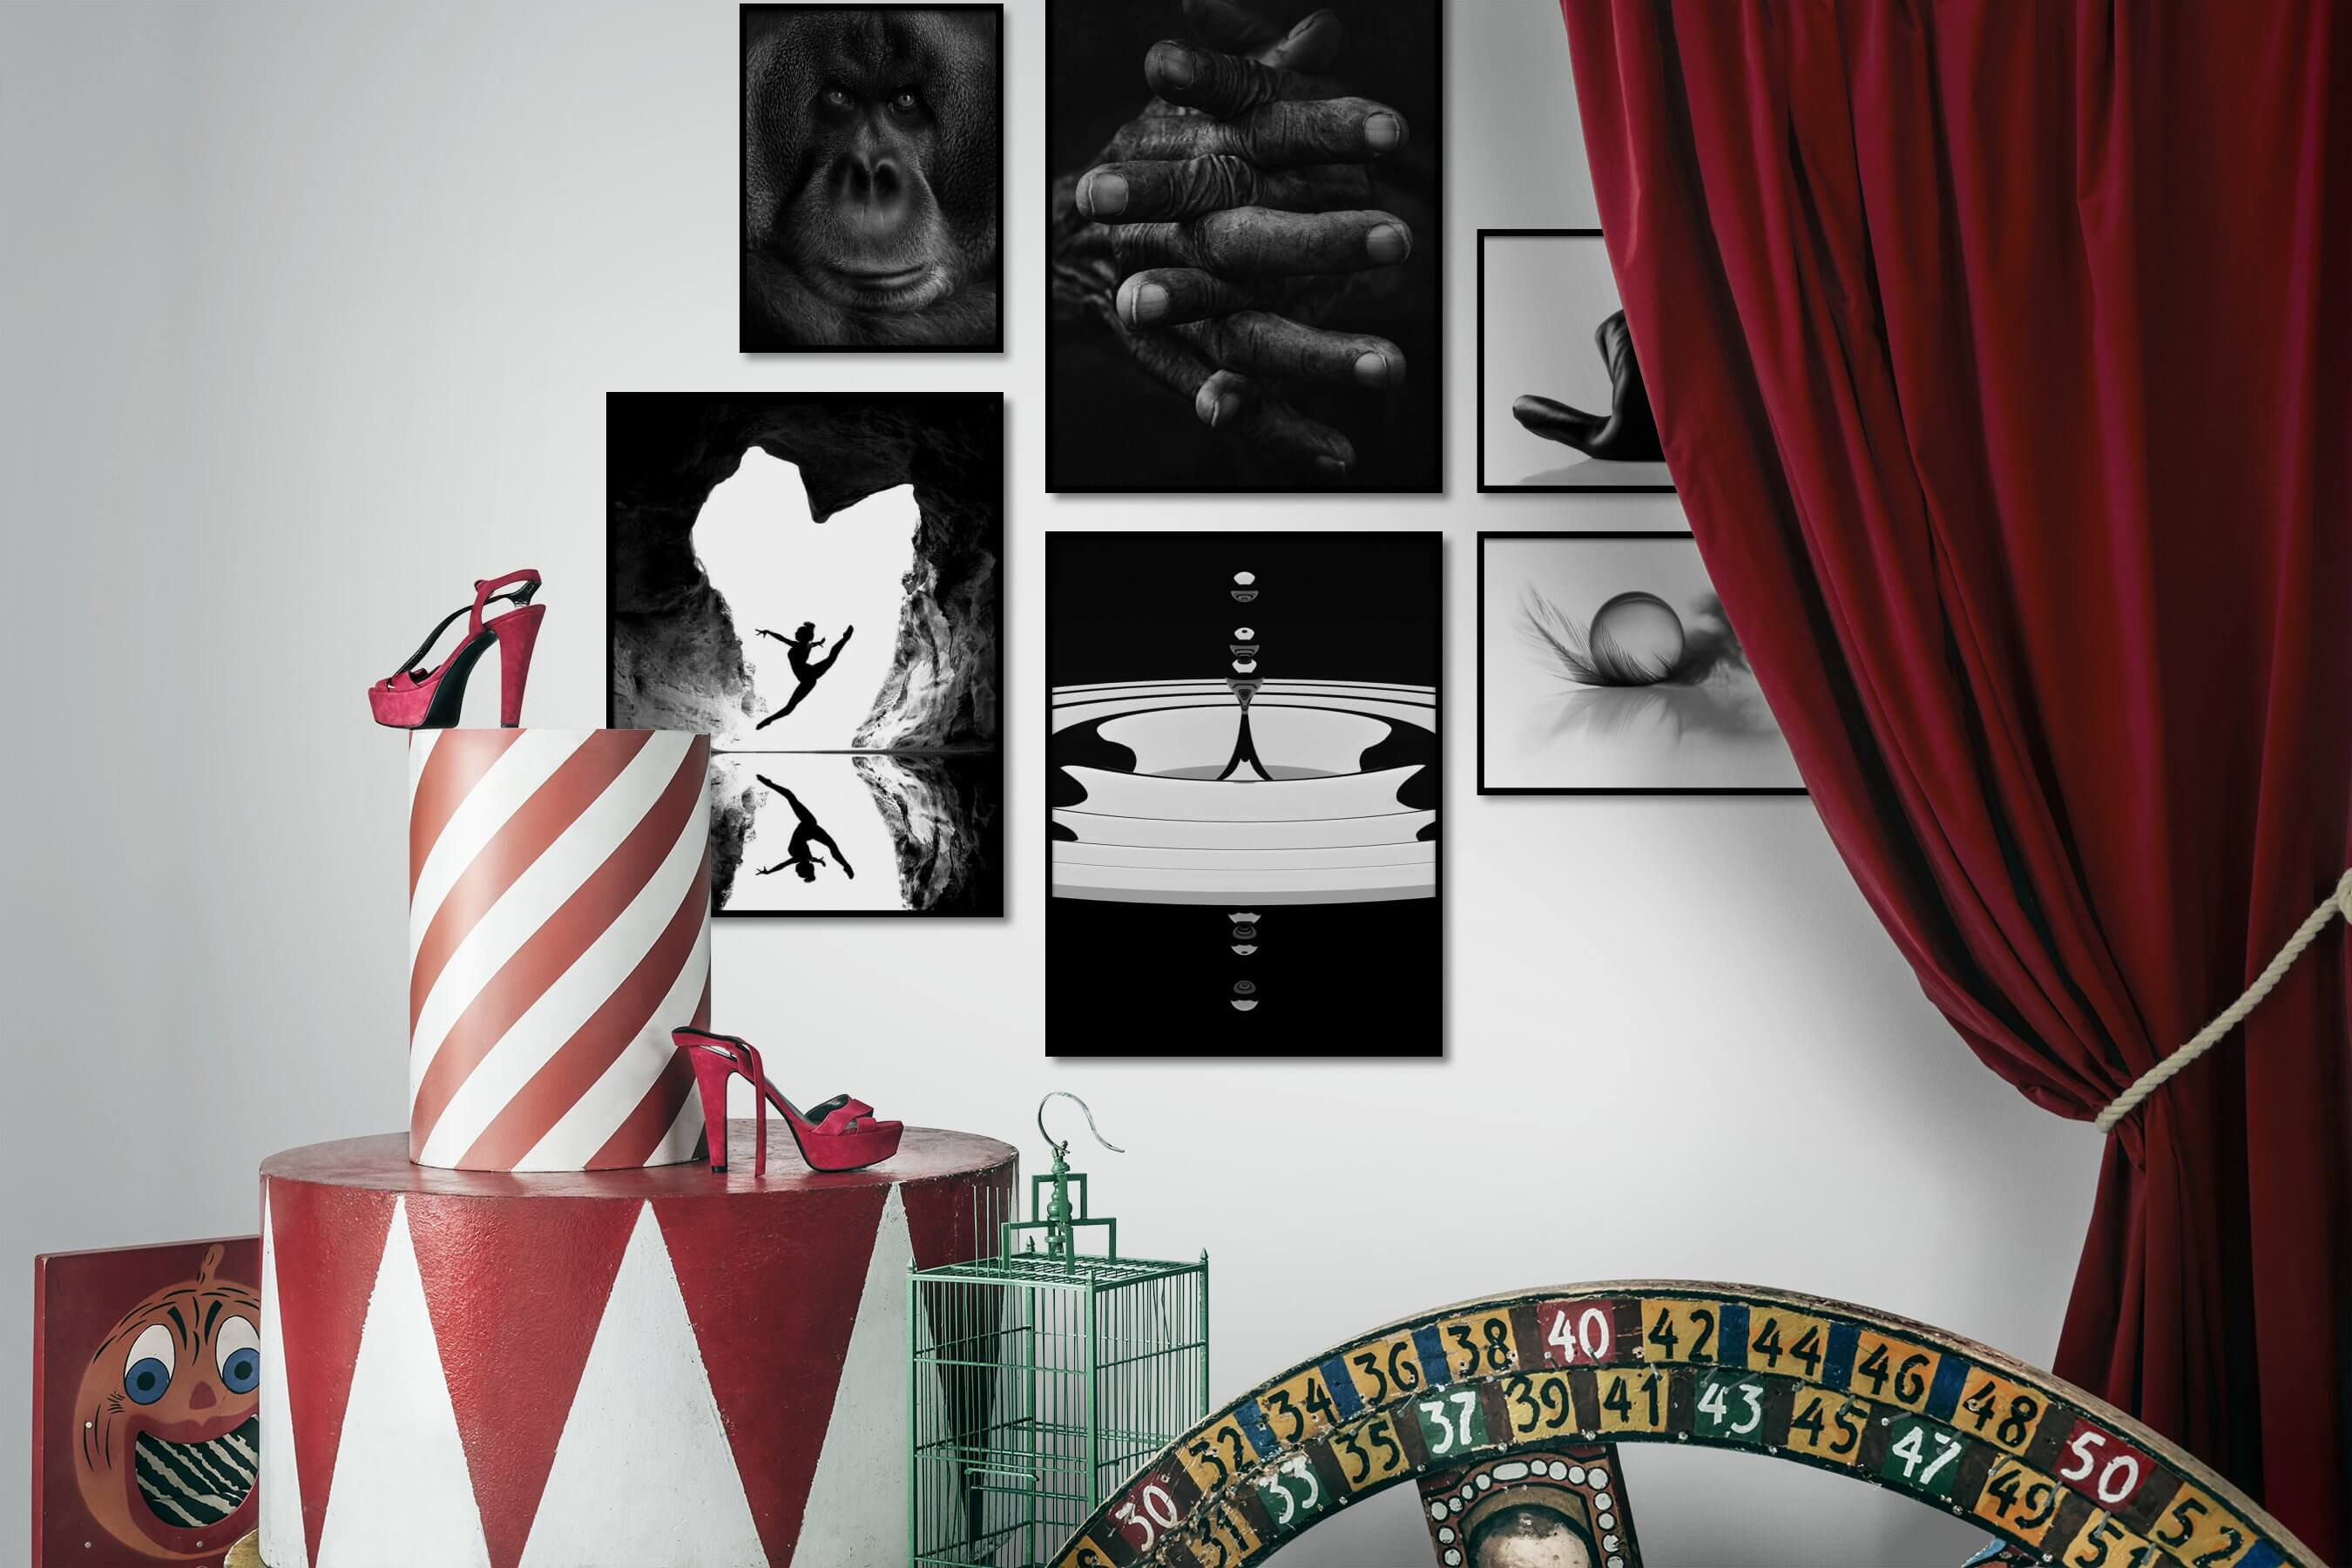 Gallery wall idea with six framed pictures arranged on a wall depicting Black & White, Animals, Dark Tones, For the Moderate, Mindfulness, Fashion & Beauty, Bright Tones, and For the Minimalist